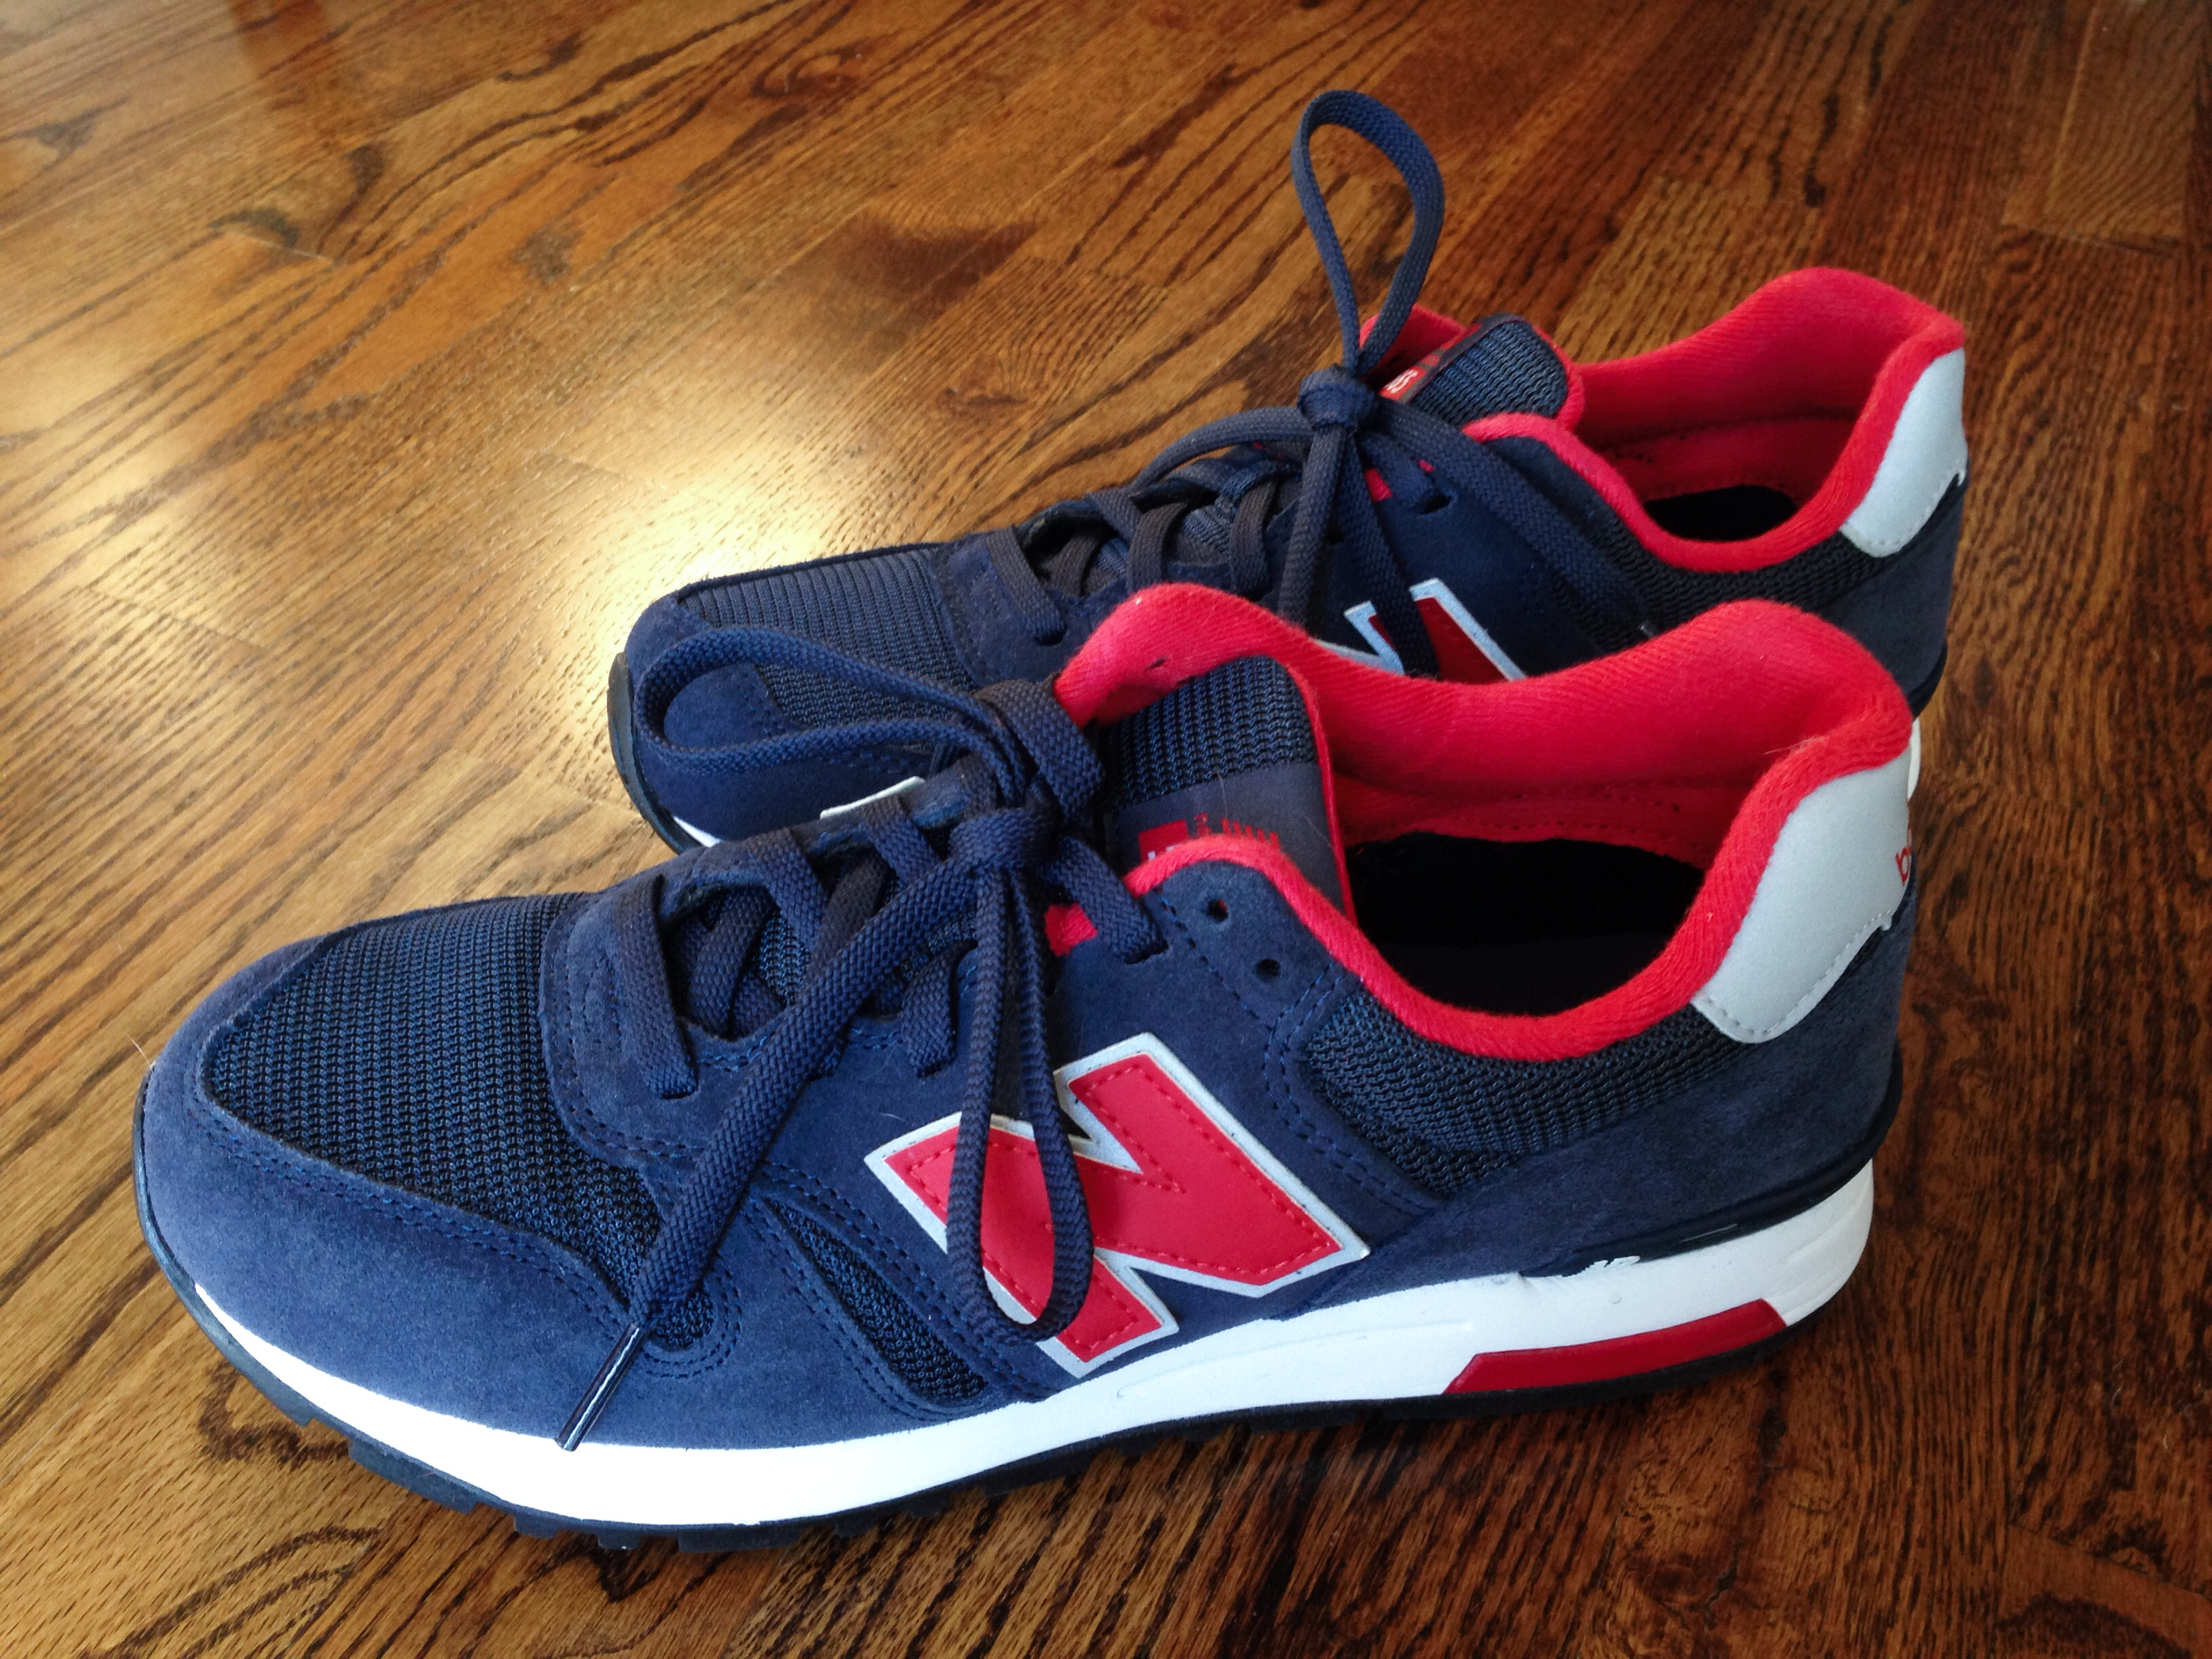 New Balance 565 Descuento